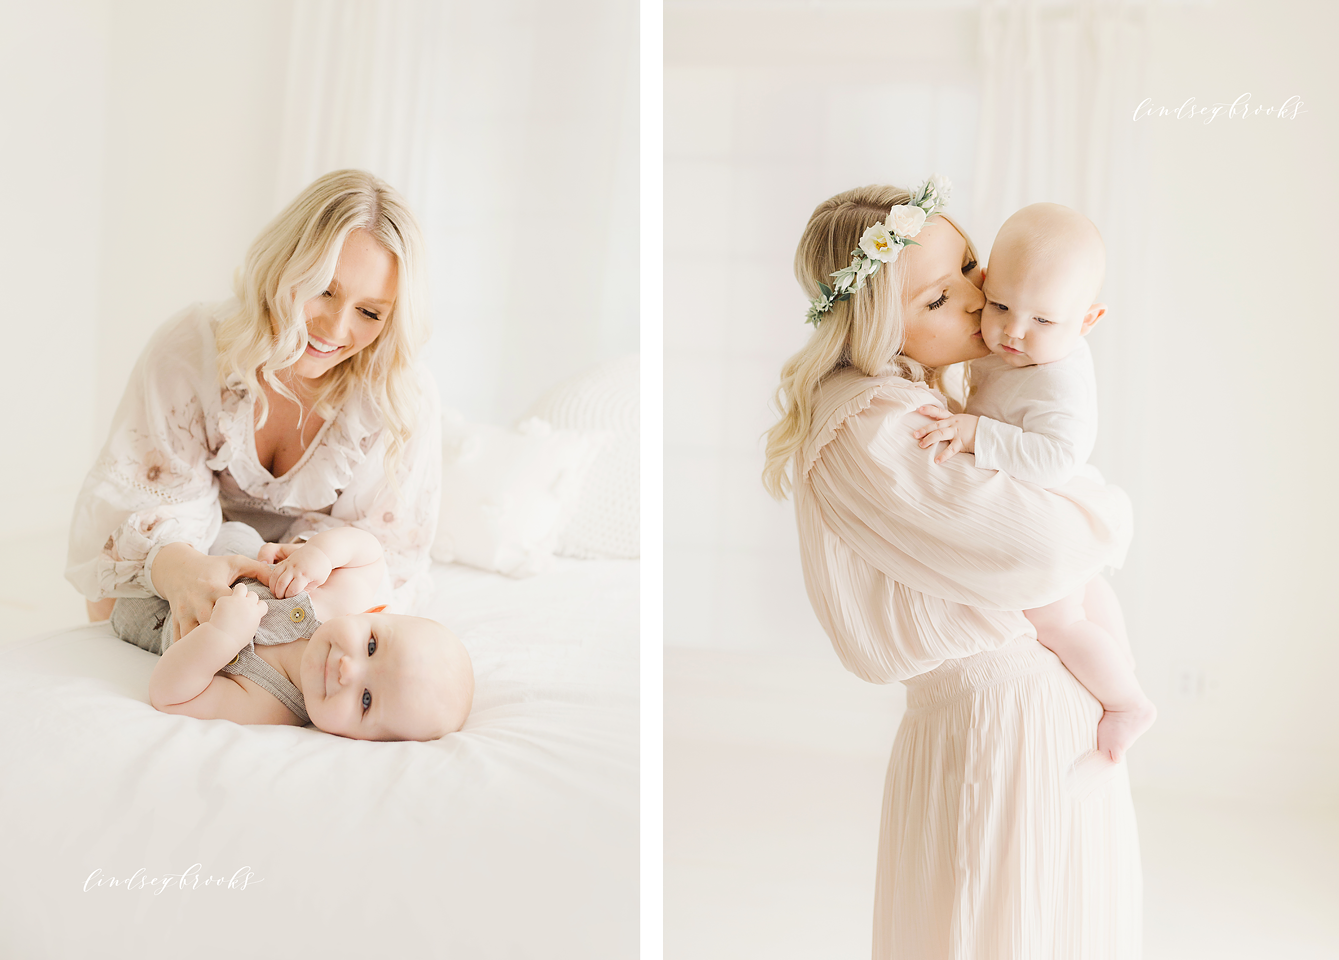 oklahoma-city-photographers-newborn-baby-motherhood-six-months-infant-child-family-photos-portraits-studio-simple-natural-light-4.png